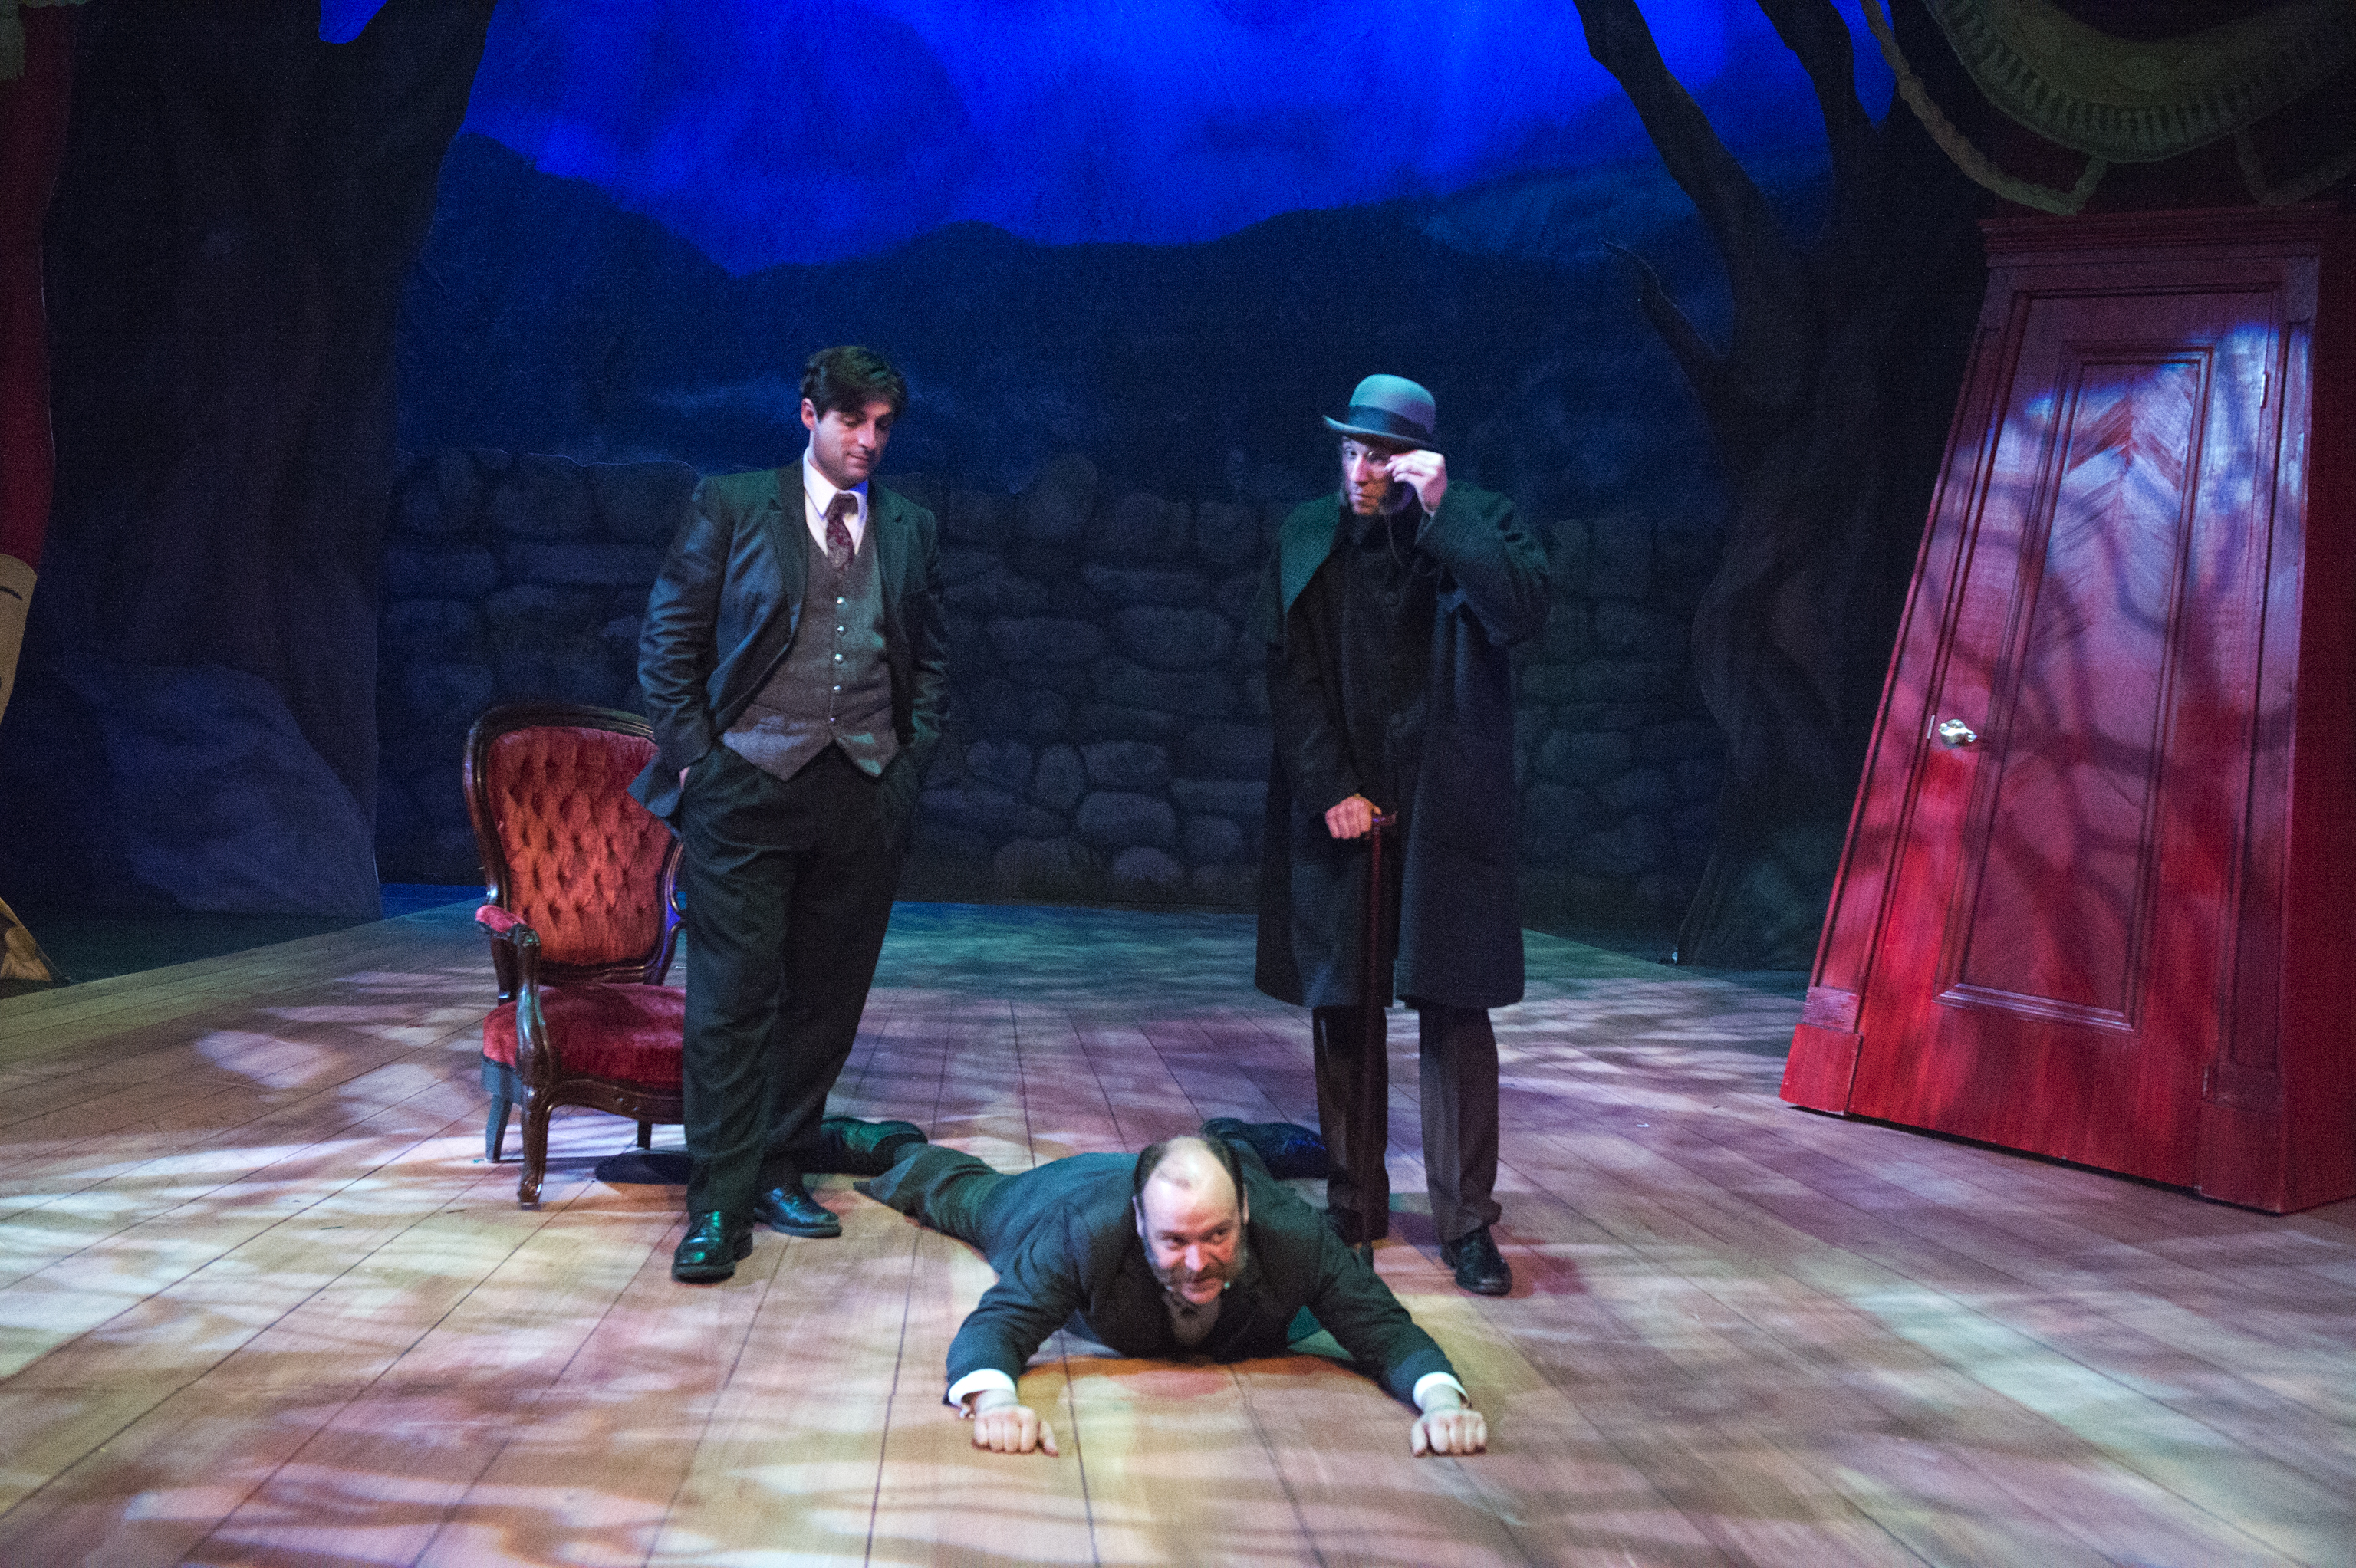 PC_Hound of Baskervilles_0625.jpg